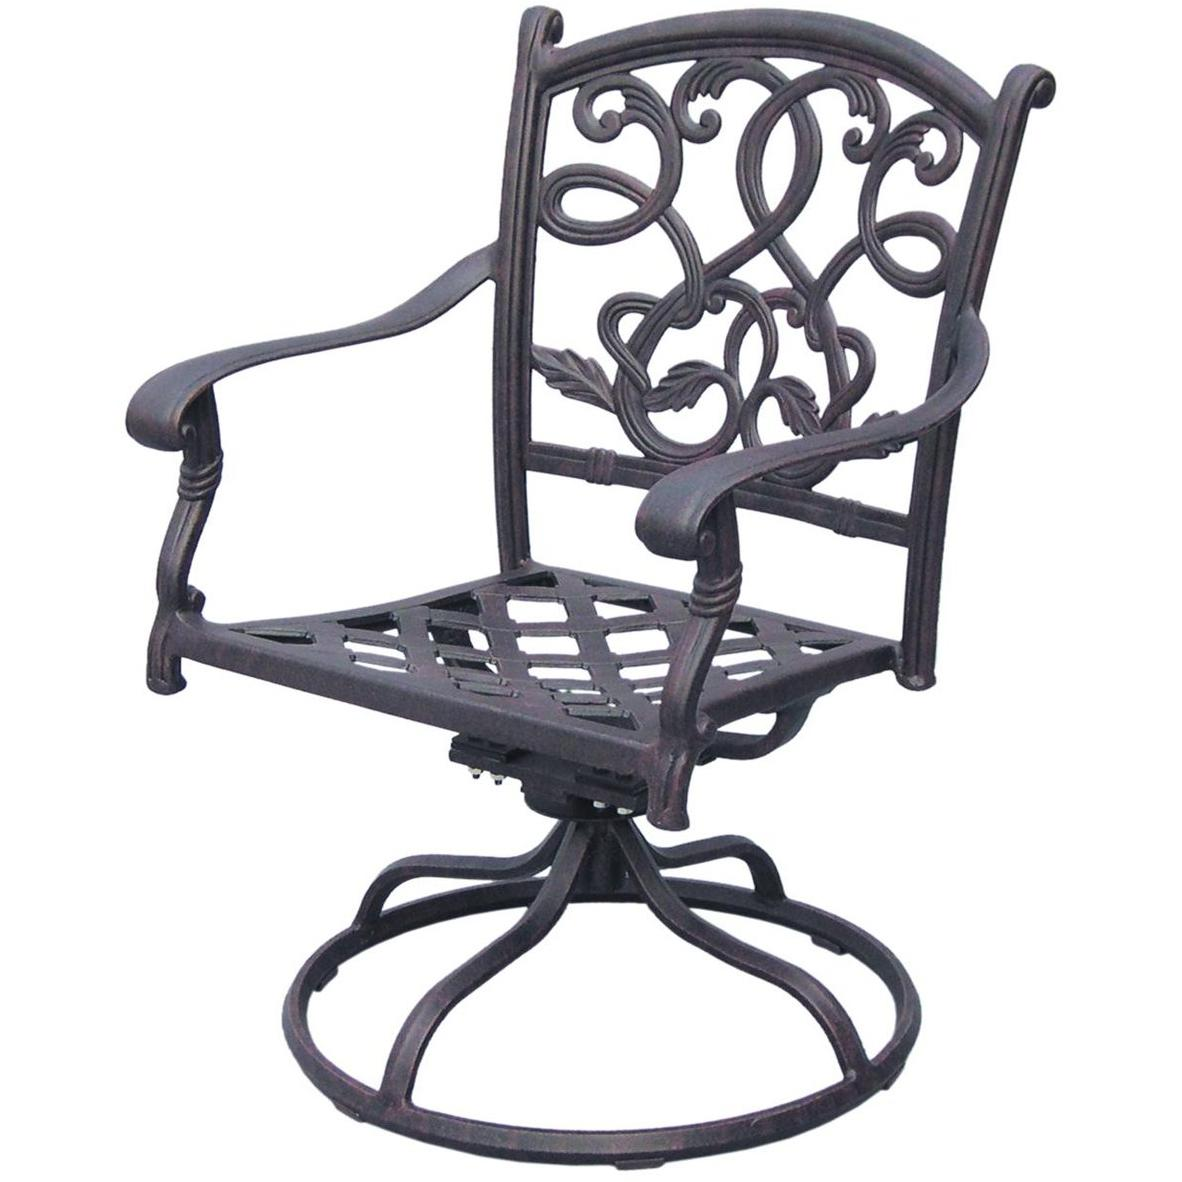 Darlee Santa Monica Cast Aluminum Outdoor Patio Swivel Rocker Chair With Cushion - Antique Bronze